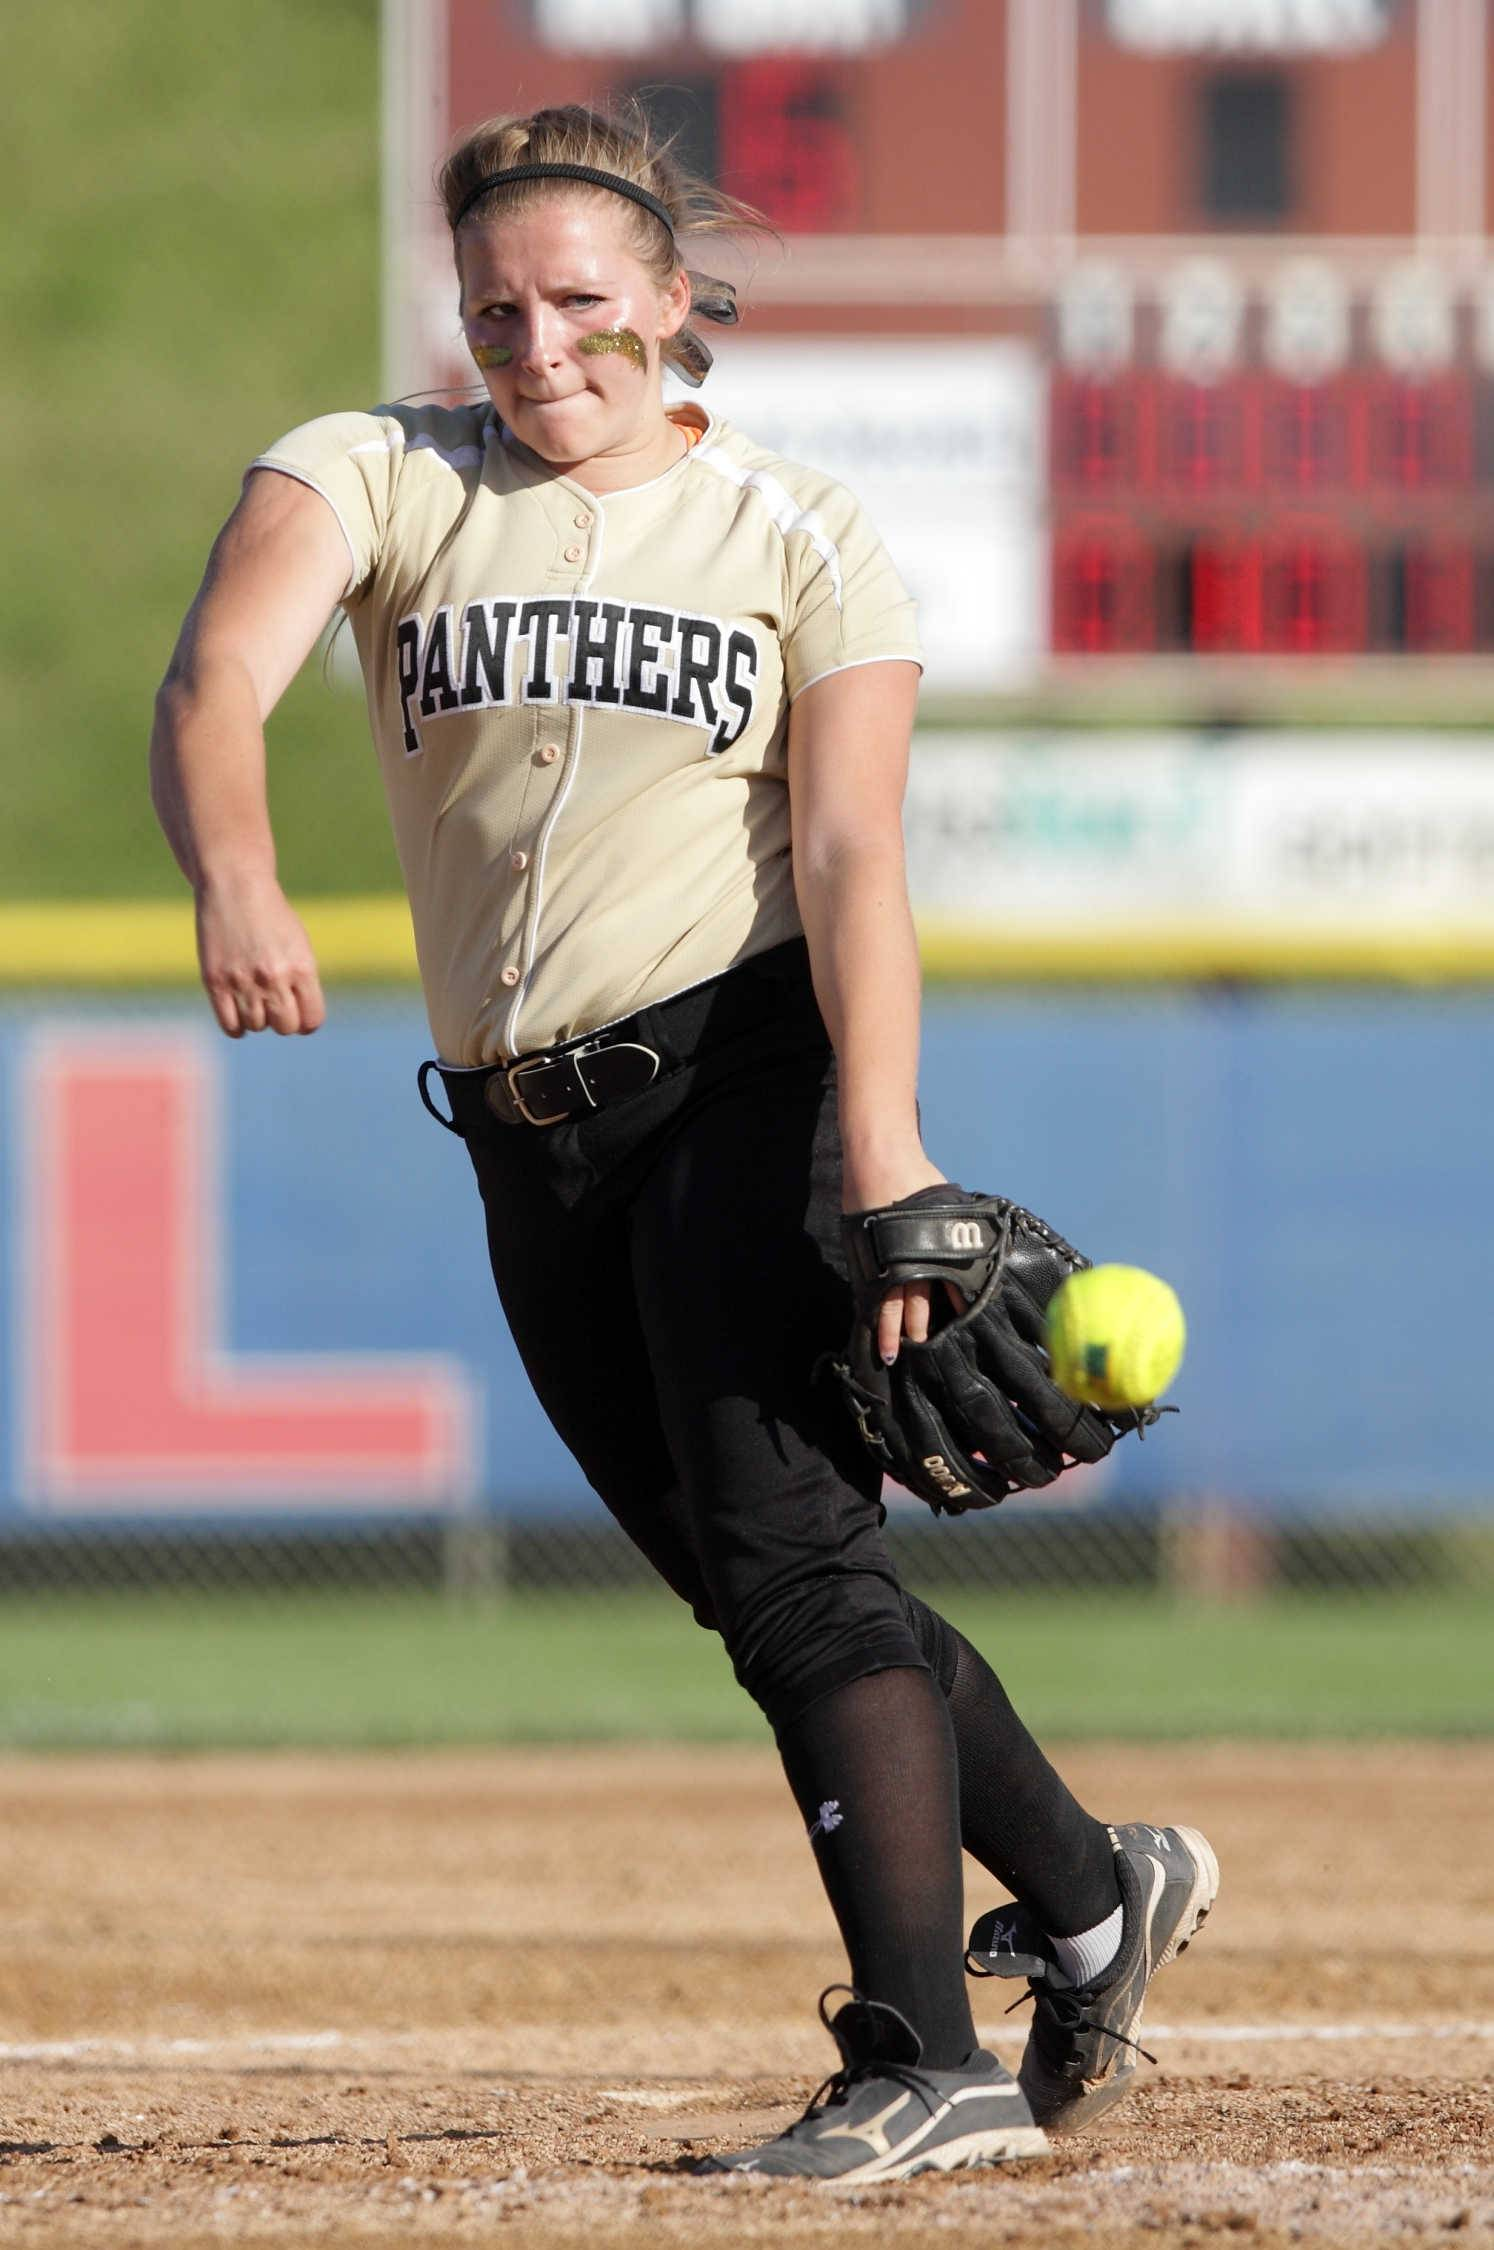 Glenbard North's Cece Dopart winds up for a pitch during the Class 4A state semifinal game against Warren on Friday. The Panthers lost 6-3 and will play for third place Saturday against Lincol-Way East.